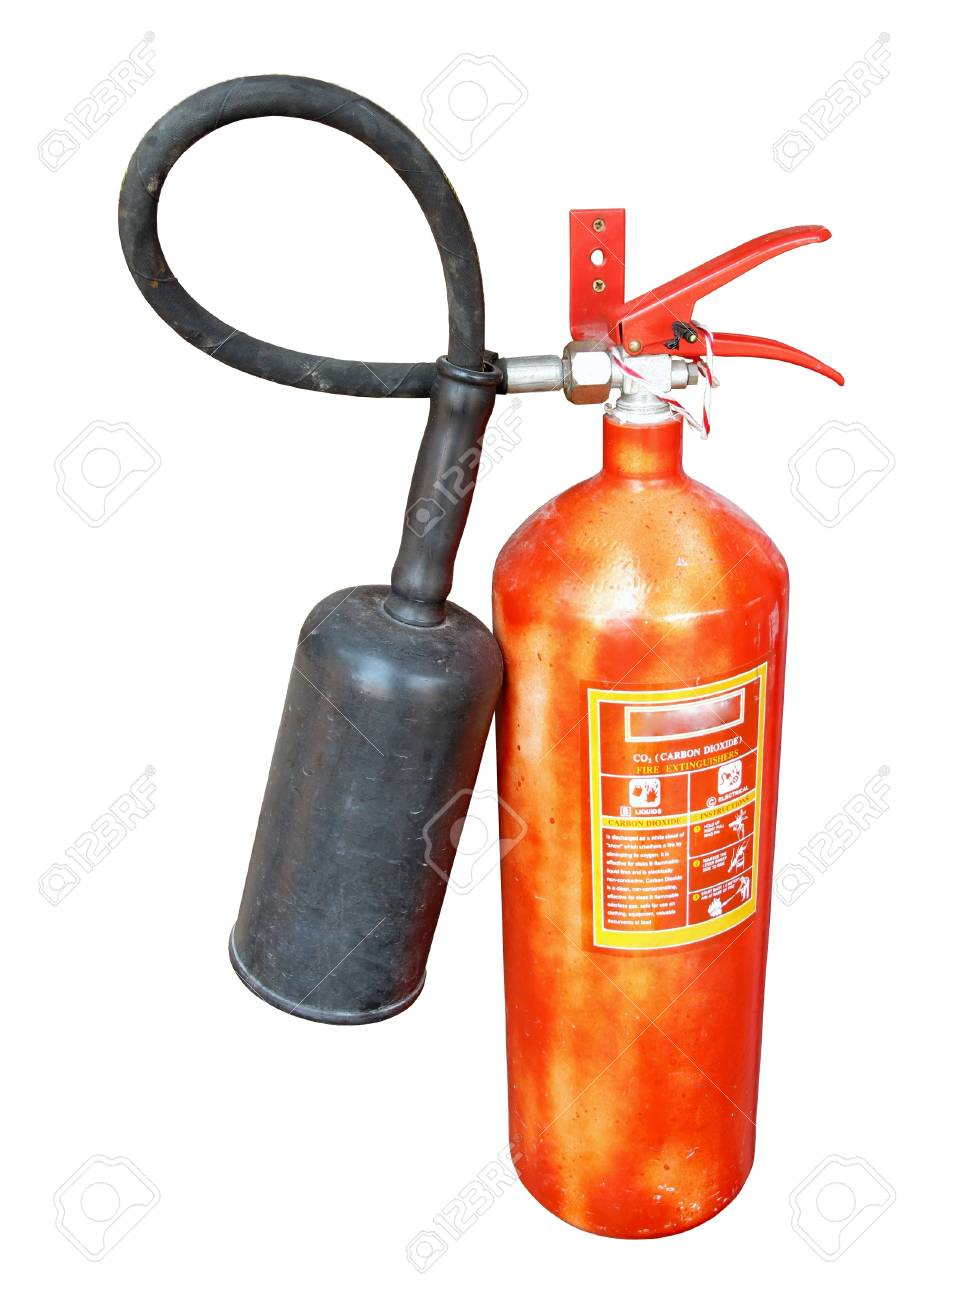 old fire extinguisher on white background Stock Photo - 18221660